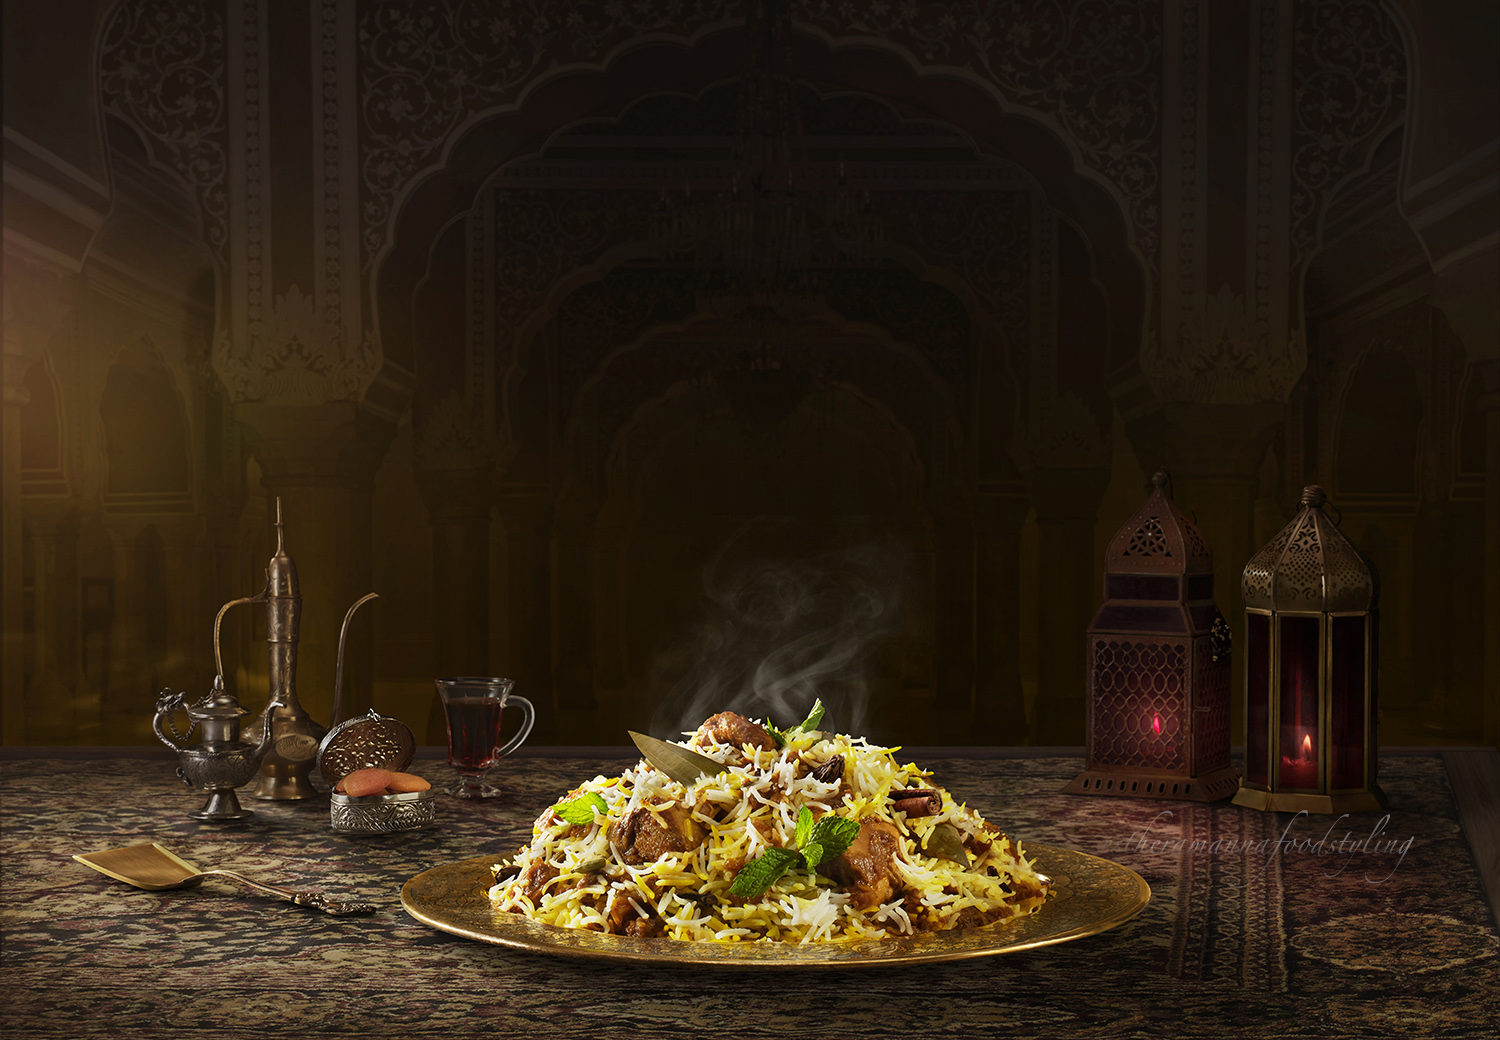 Foodstyling for Behrouz biryani,a leading biryani brand in India.Foodstylist